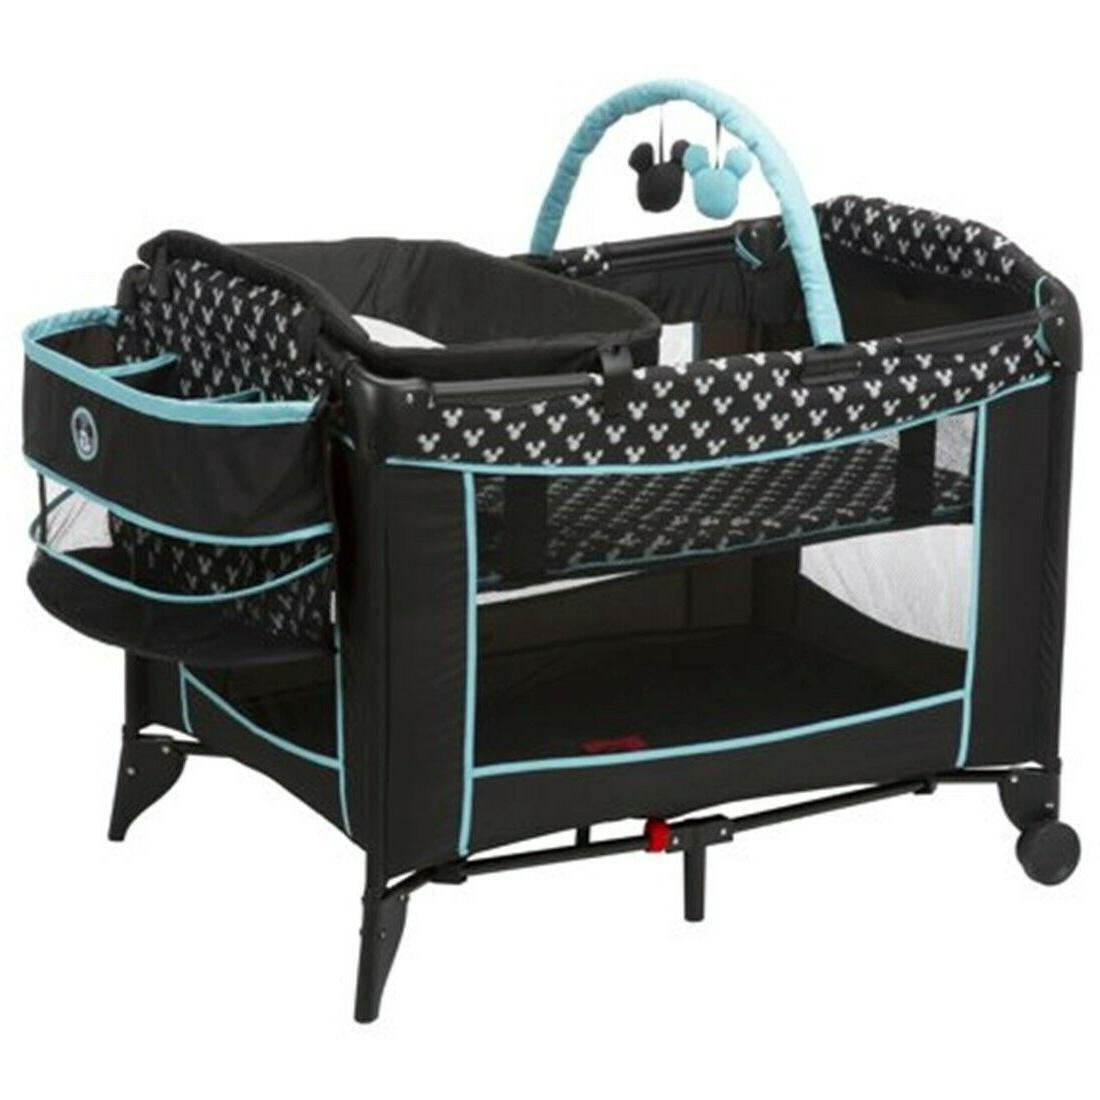 Disney System with Car and Playard Nursery Boy Combo